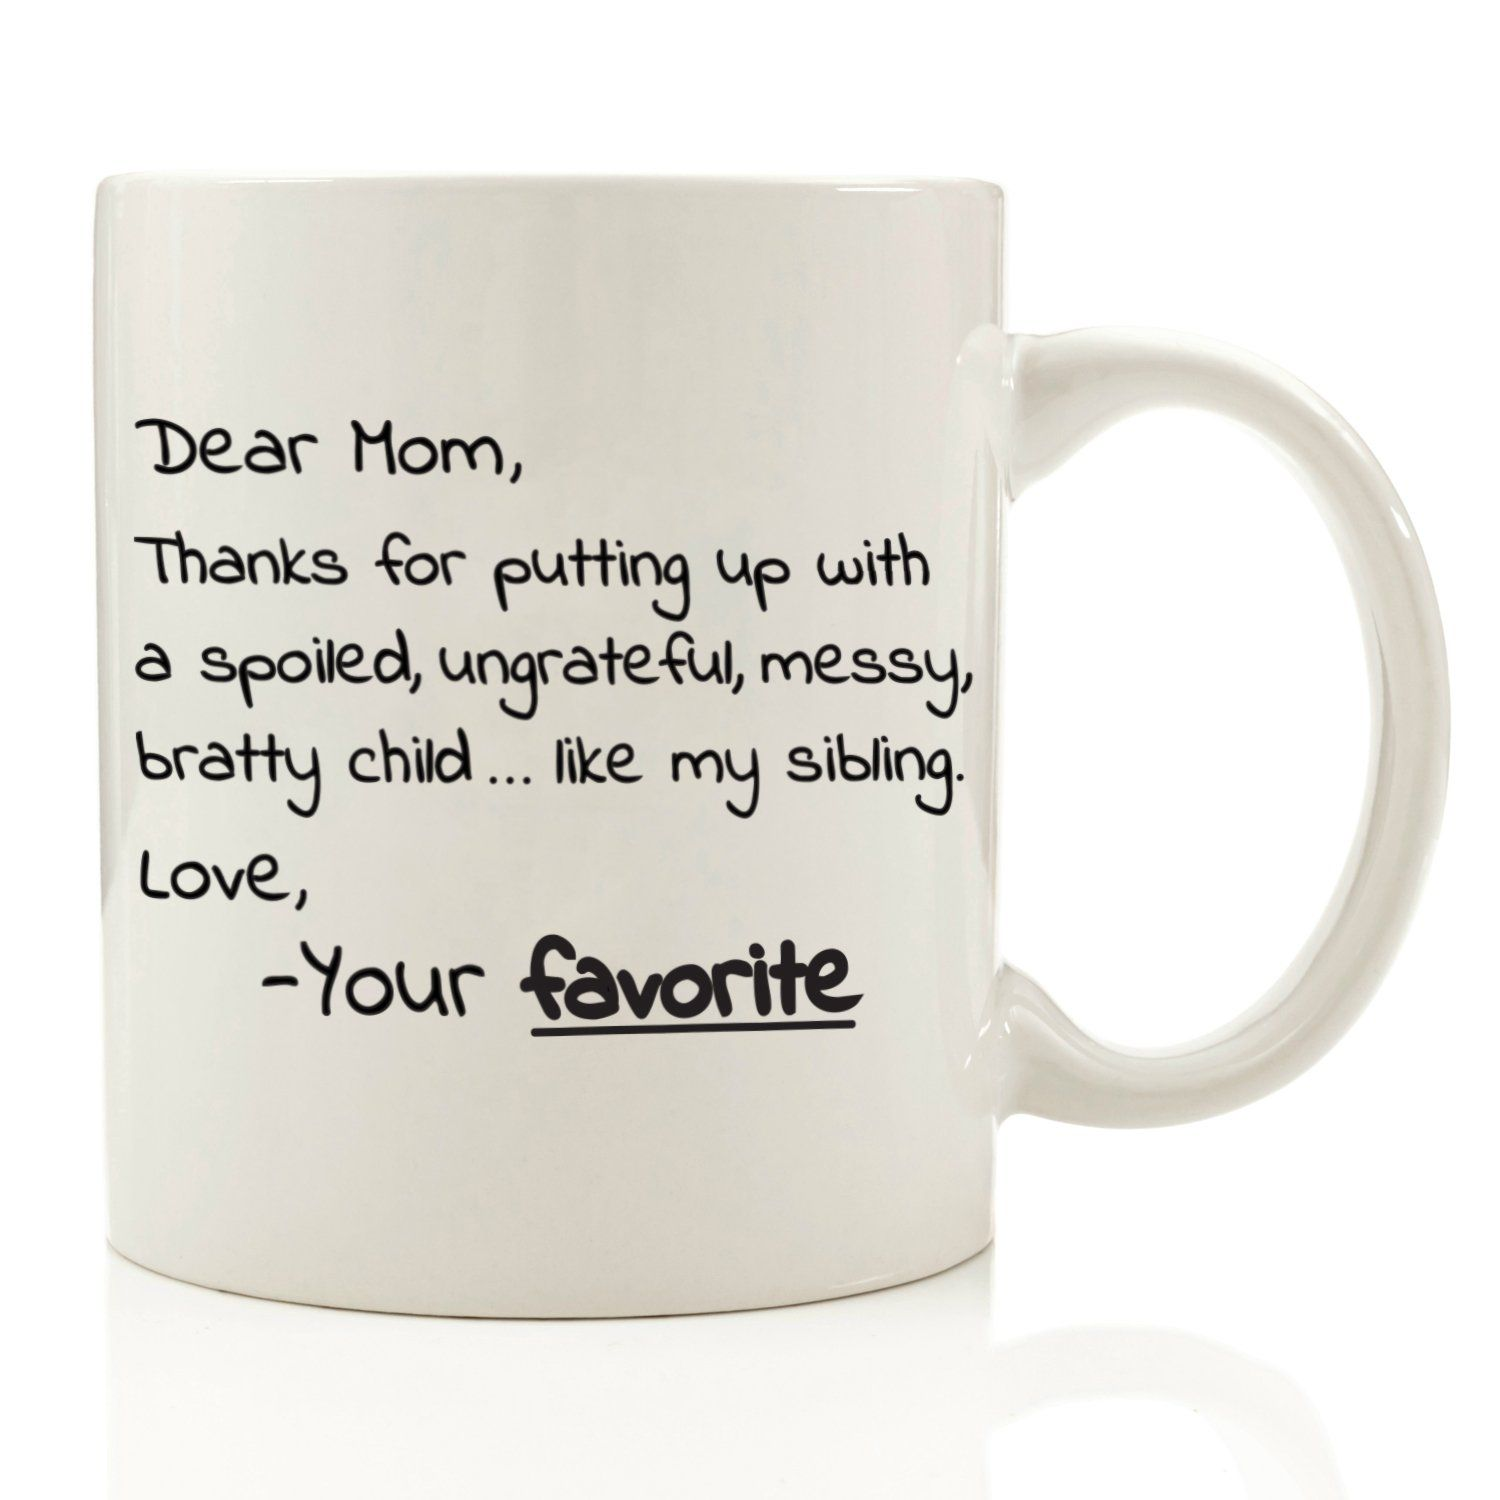 b27ac14bc298 Dear Mom From Your Favorite Funny Coffee Mug 11 oz Top Birthday ...